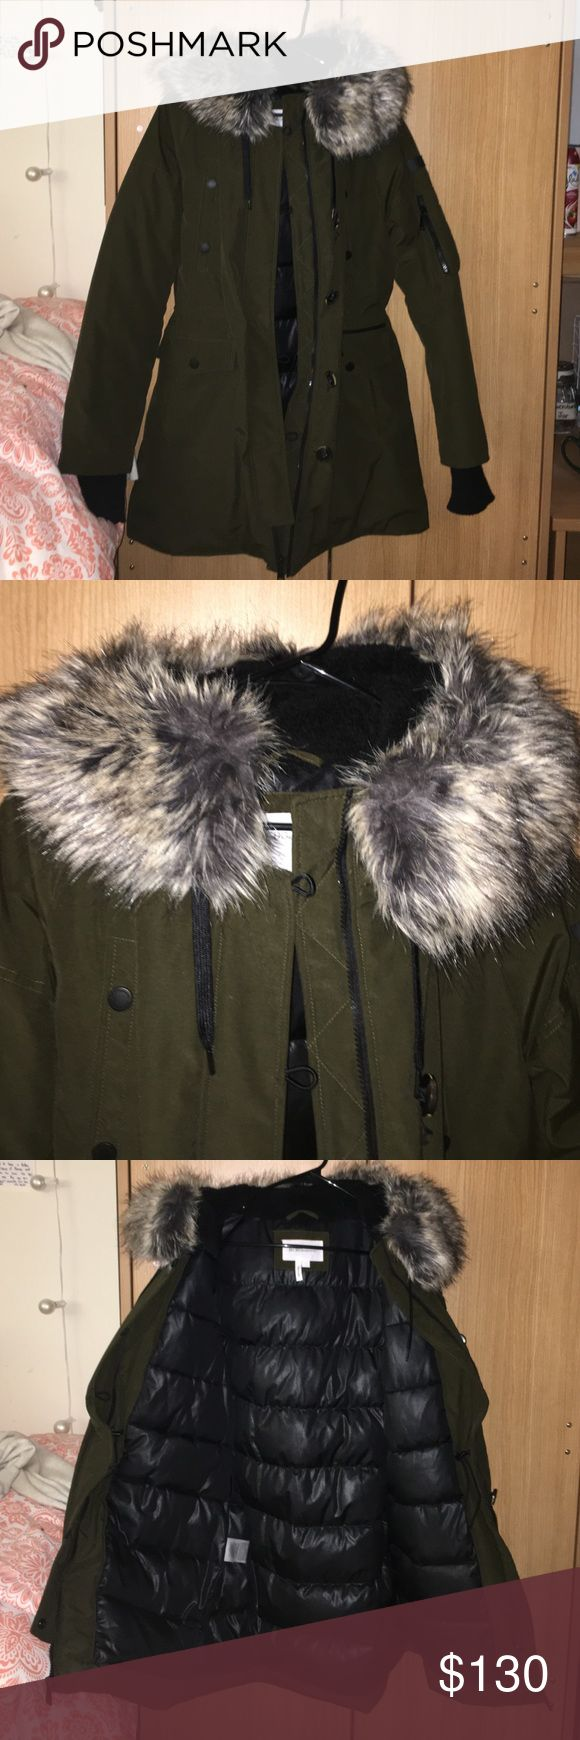 BCBG Puffer Coat Worn only twice!! Cost me a lot! But I lost weight. Super comfortable, keeps you very warm, has adjustable waist, A LOT of pockets, faux fur detail on hood which is removable, let me know if you have any questions :) this coat is beautiful!! BCBGeneration Jackets & Coats Puffers